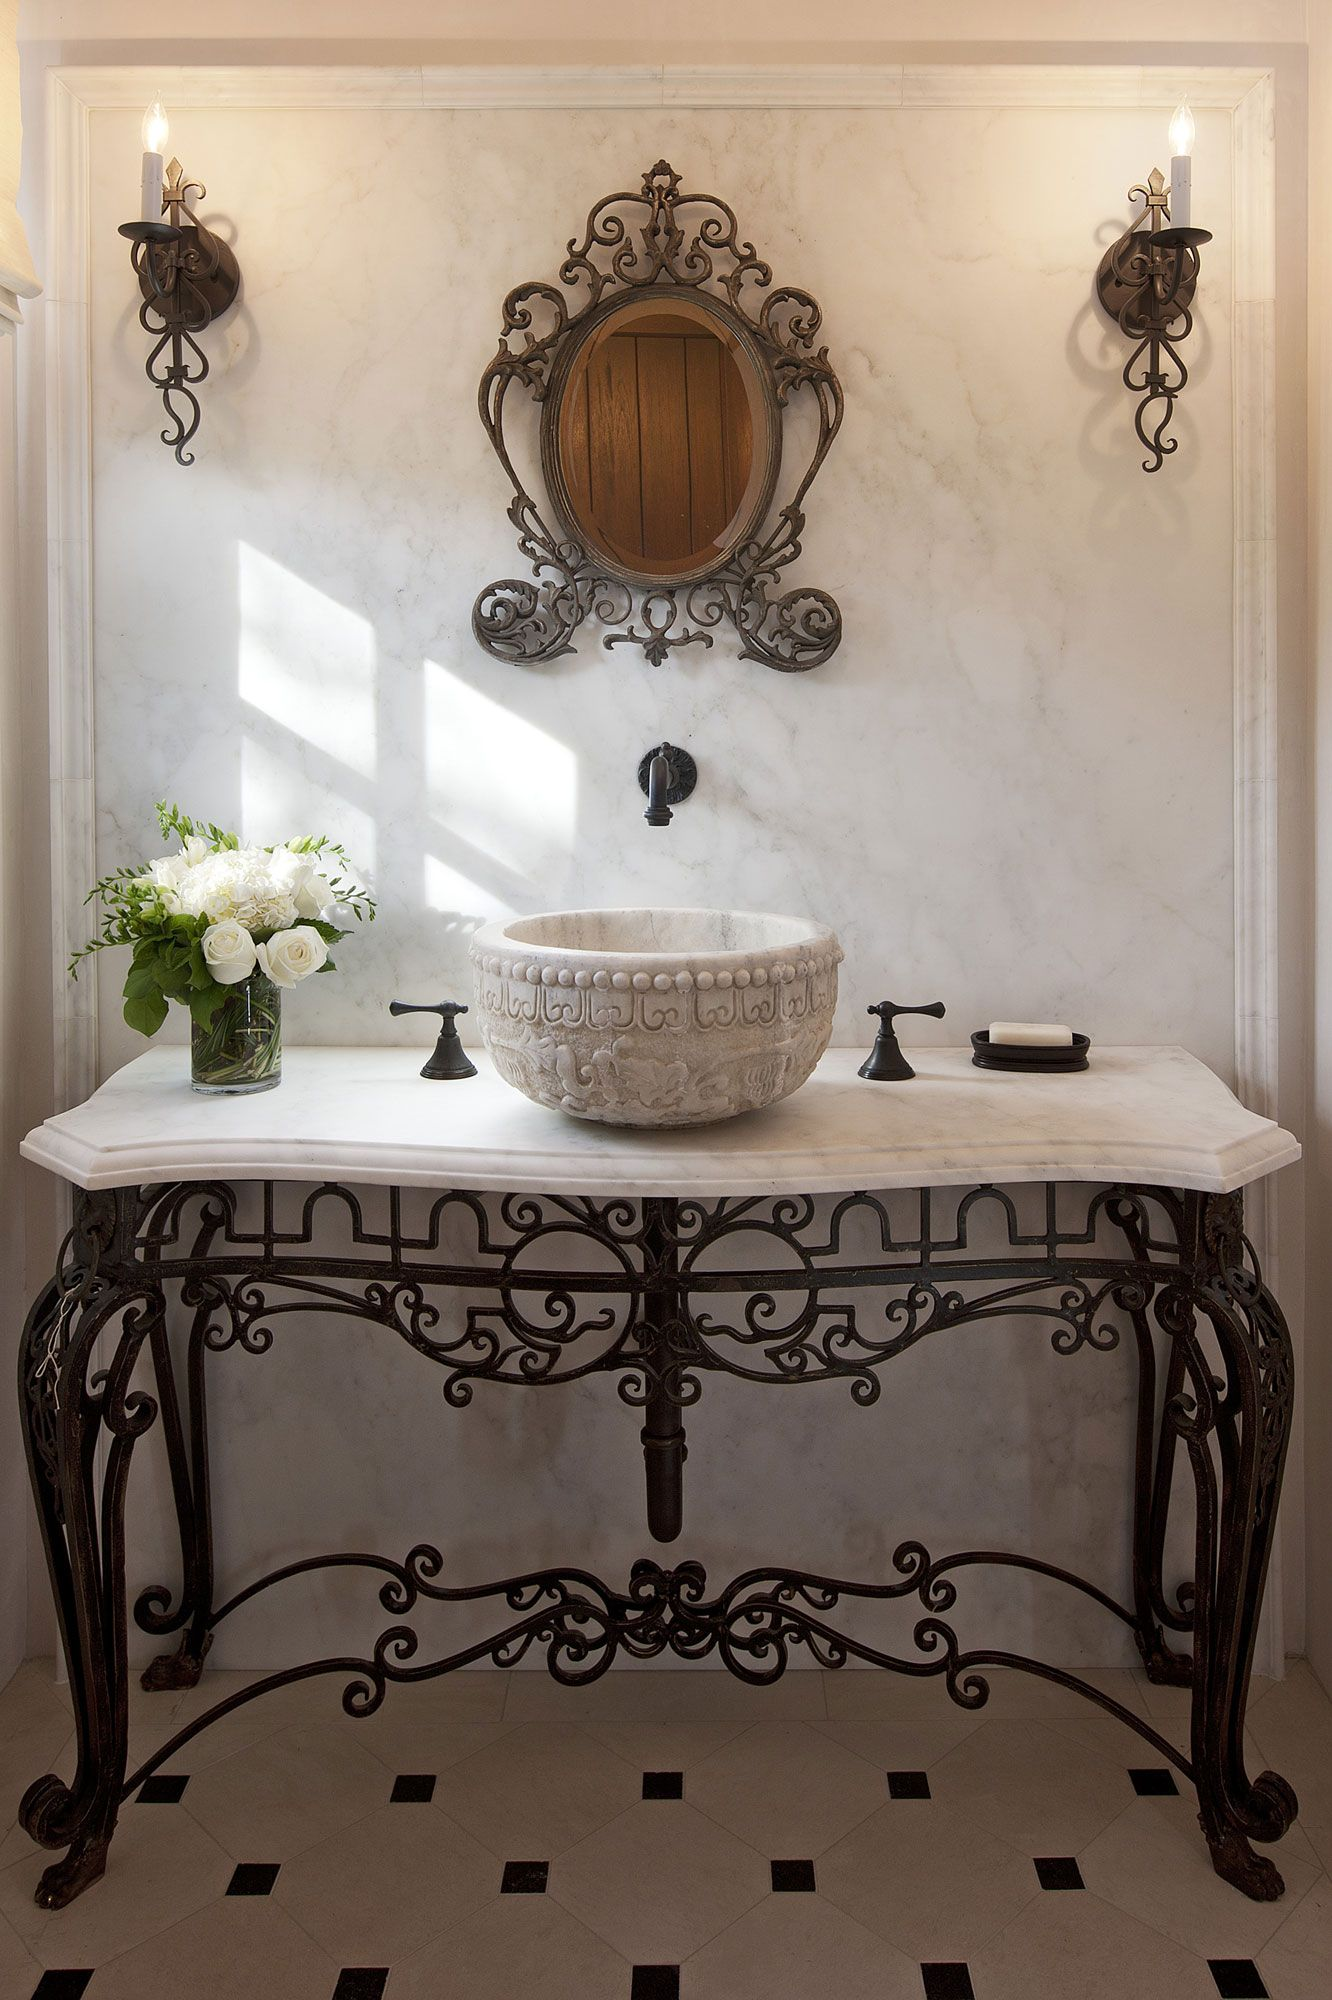 Bathroom Spanish Styles | Spanish Romantic Style Bathroom With A Vanity  Made Of An Antique